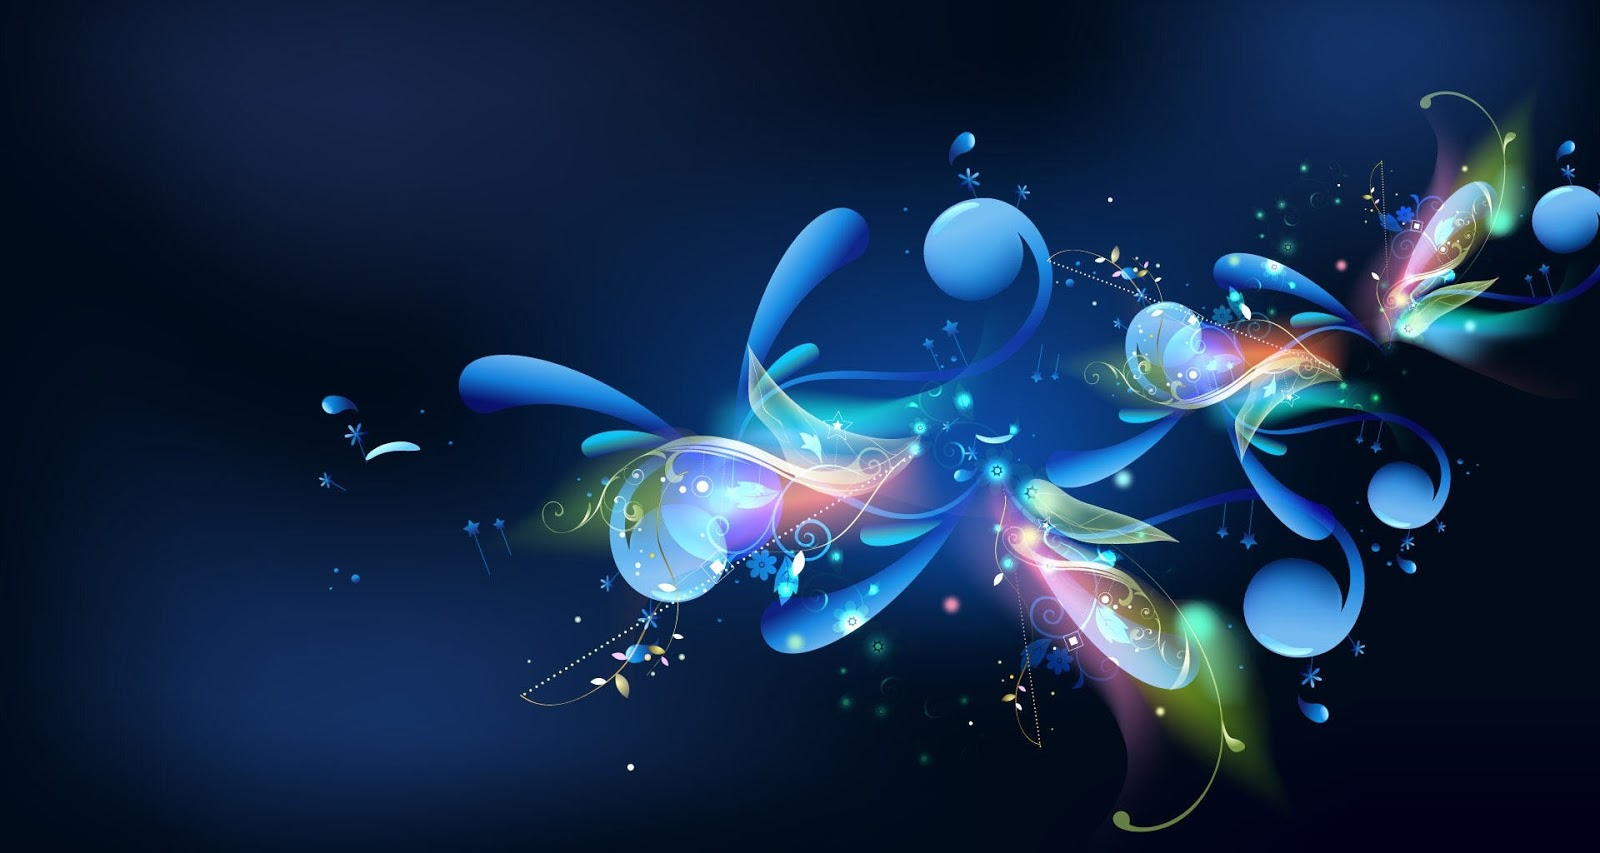 Backgrounds For Photoshop Editing Hd Wallpaper Background   HD 1600x853